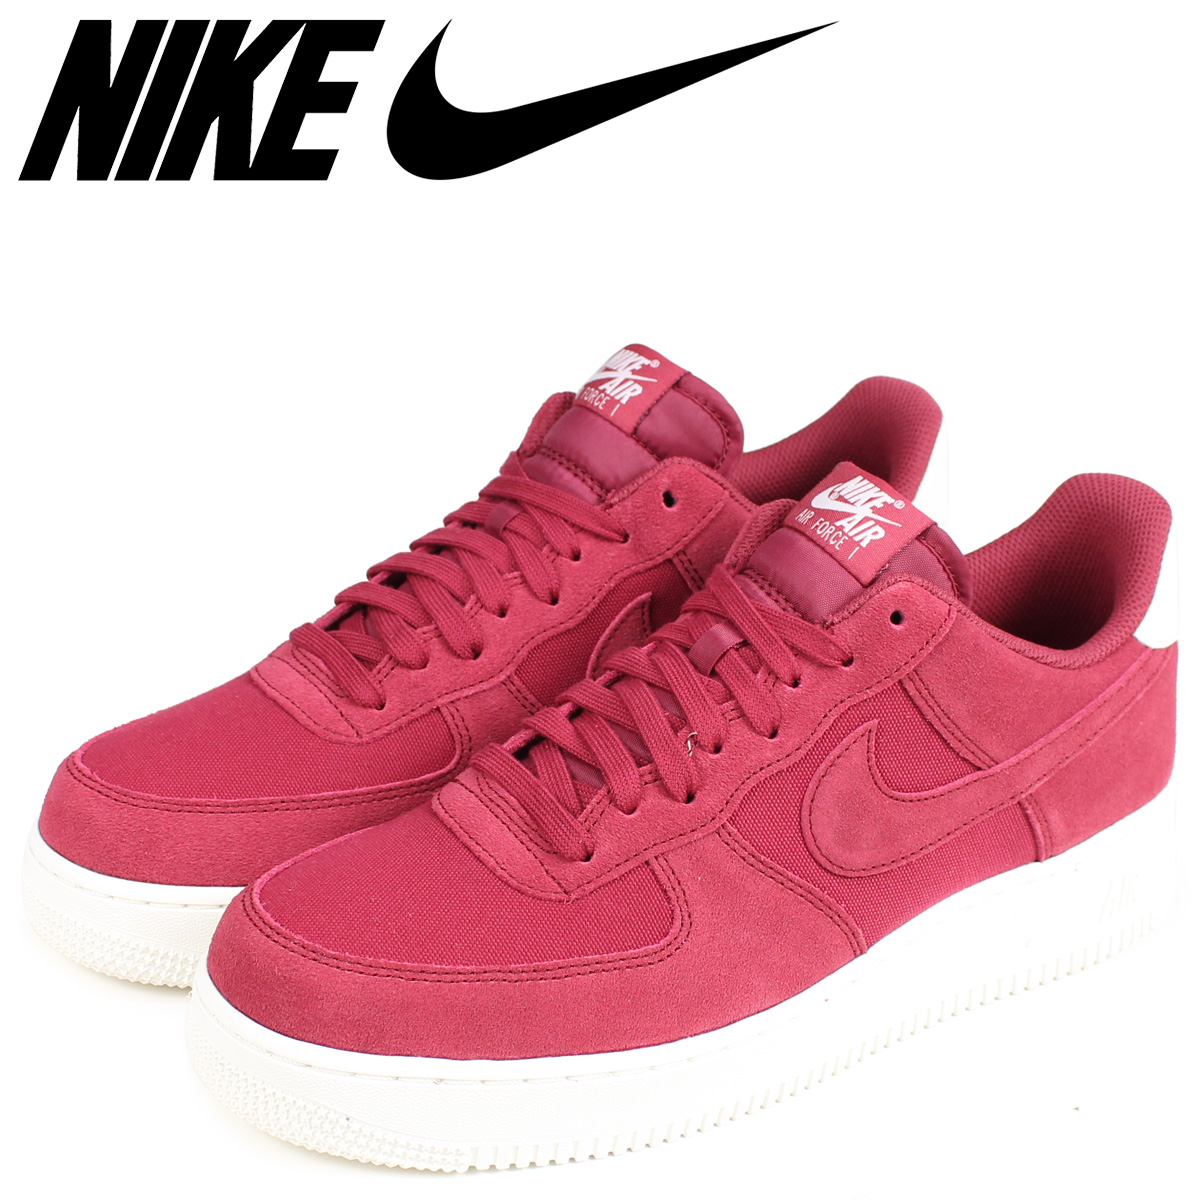 NIKE Nike air force 1 sneakers men AIR FORCE 1 07 SUEDE AO3835 600 red red